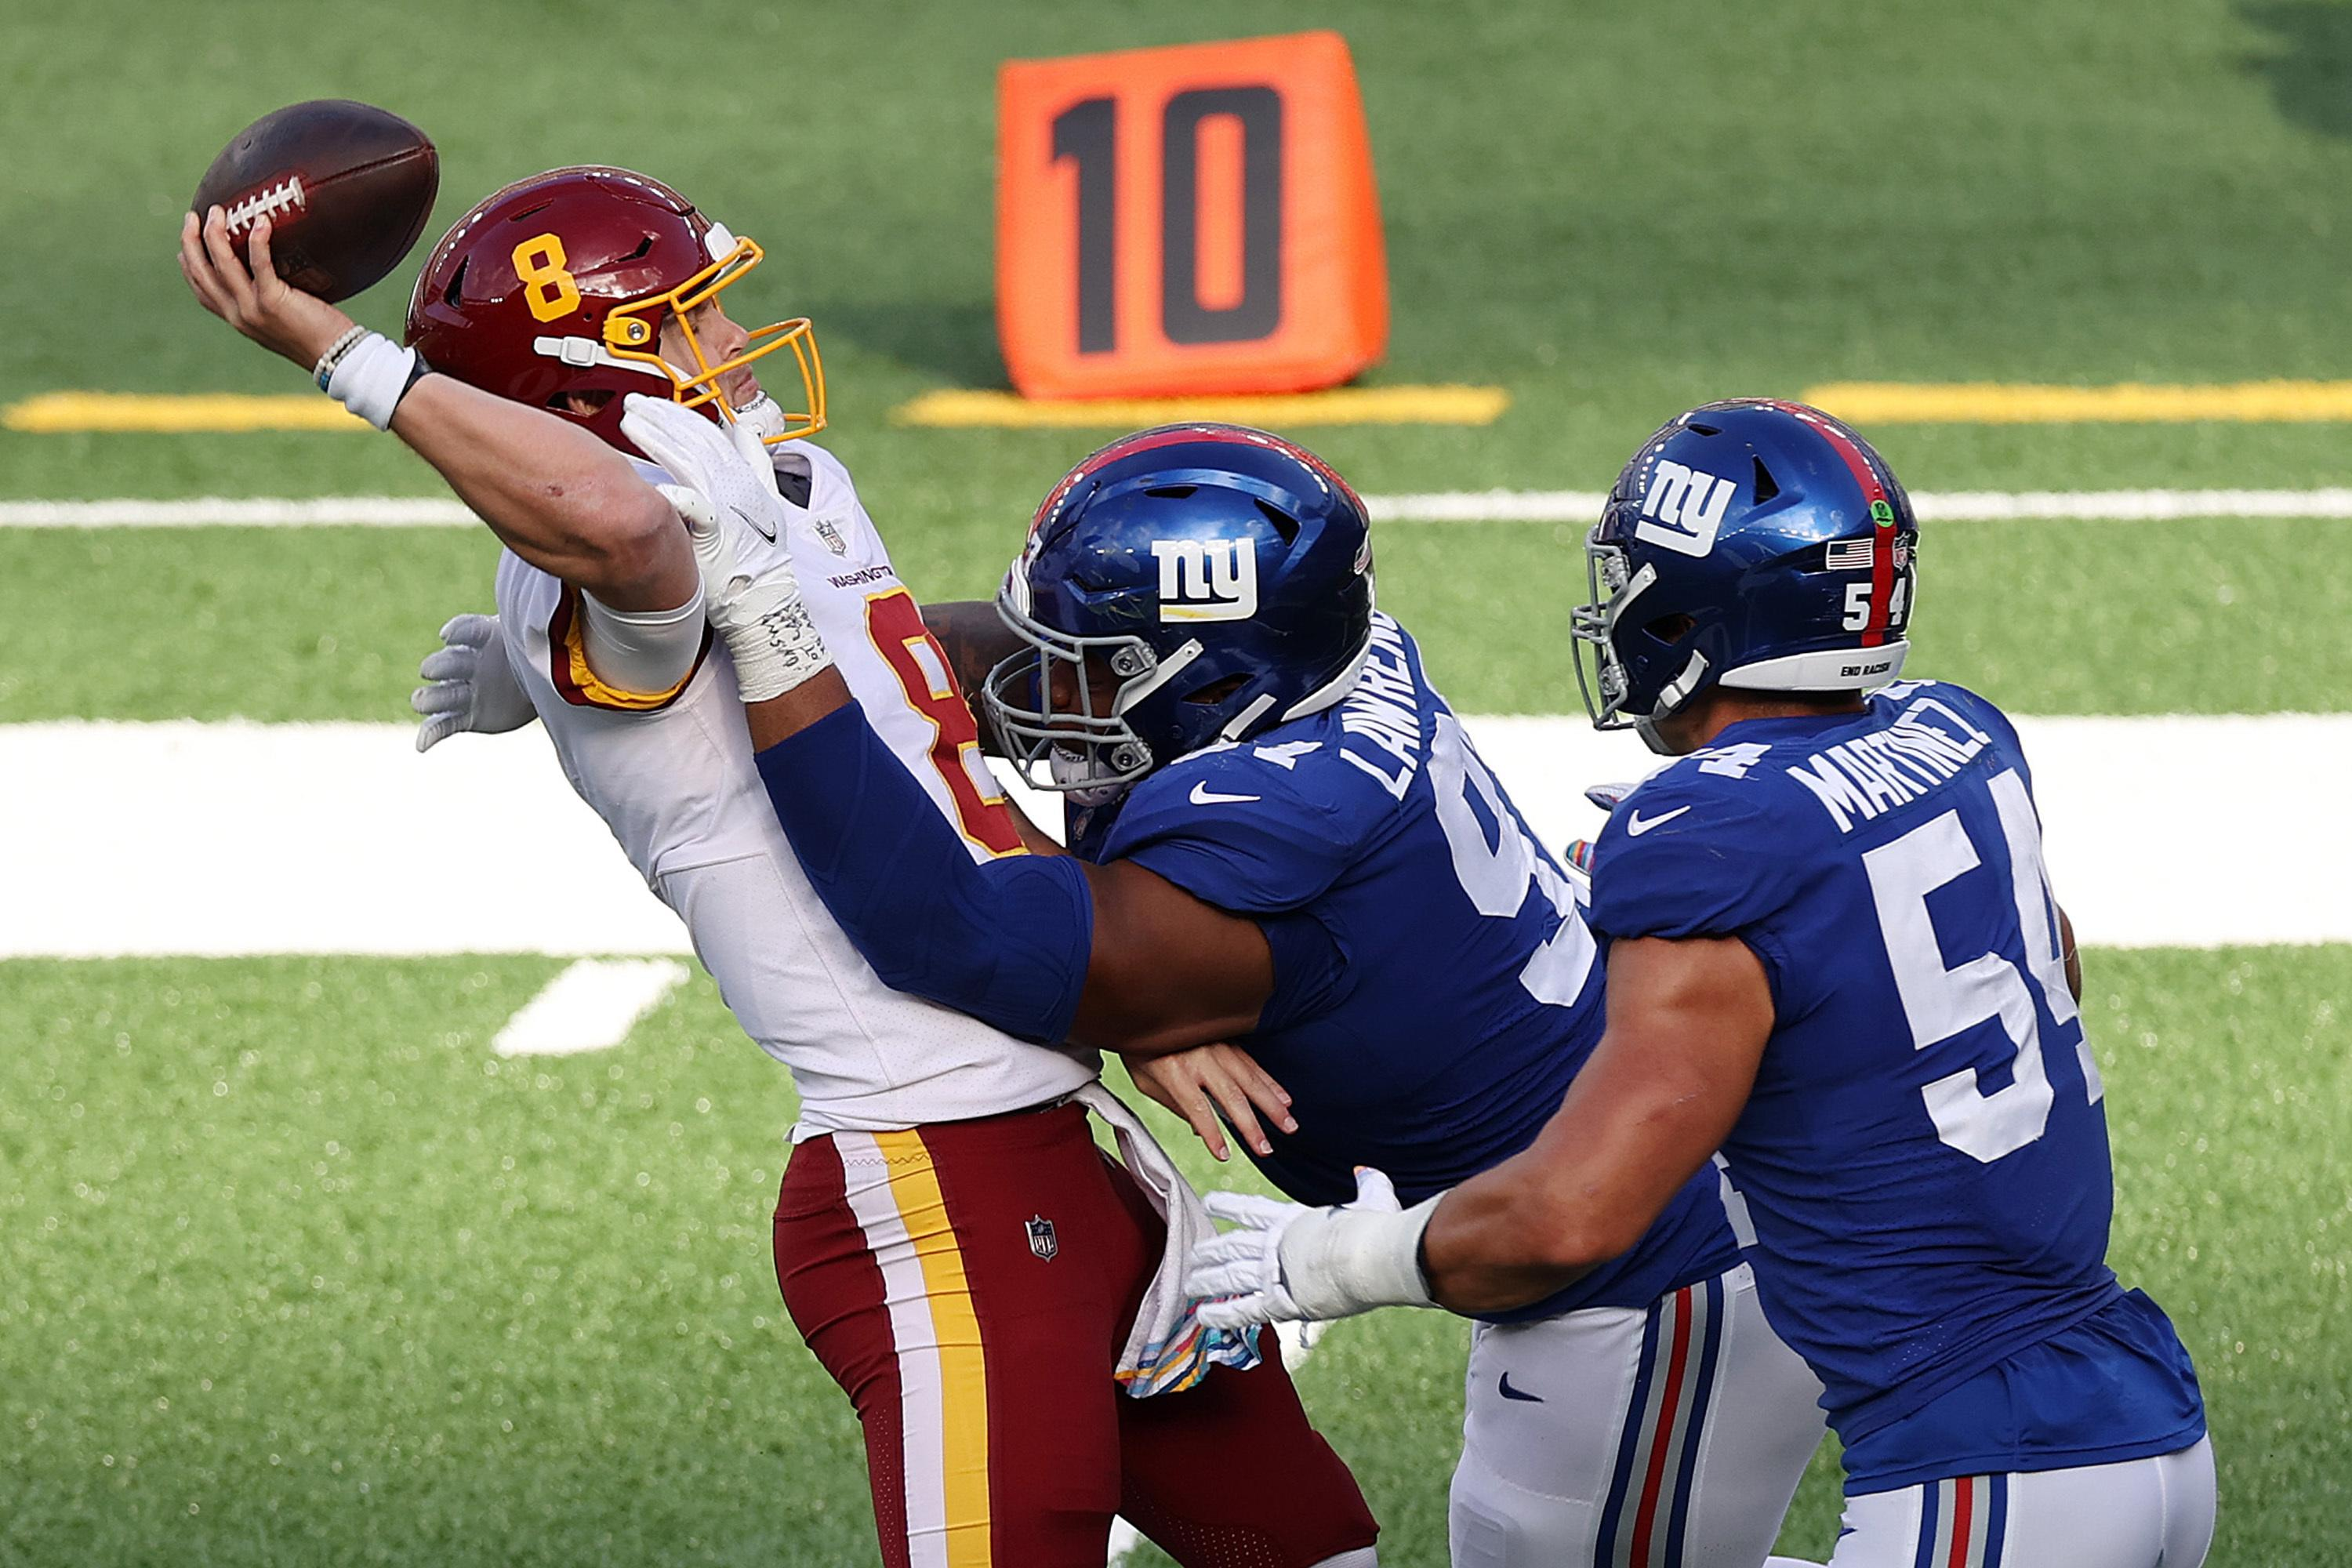 Joe Judge, Giants get first win 20-19 after Washington's Ron Rivera rolls dice late